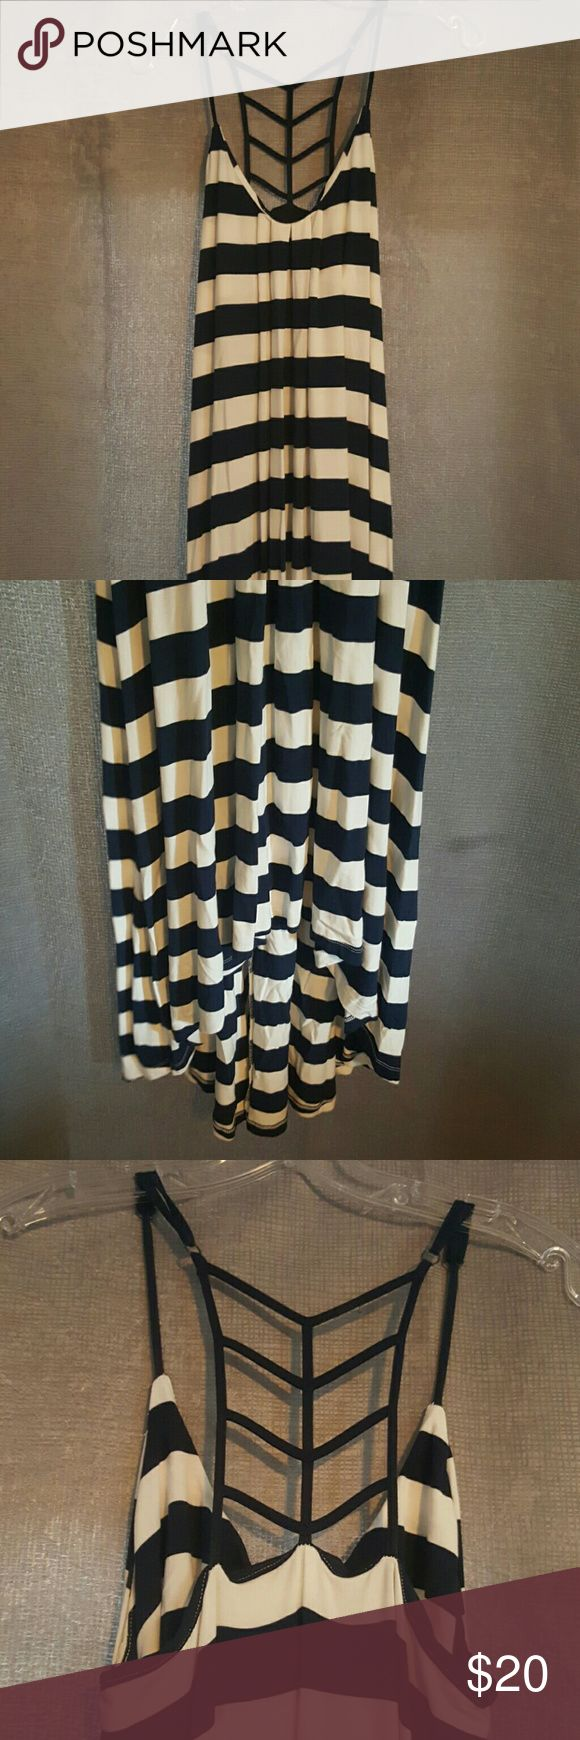 Cynthia Rowley nautical maxi dress Nautical navy and white stretchy cotton striped maxi. Has built in bra and adjustable straps. Shorter in the front and extends to floor length in the back. Only worn once with no damage. Cynthia Rowley Dresses Maxi